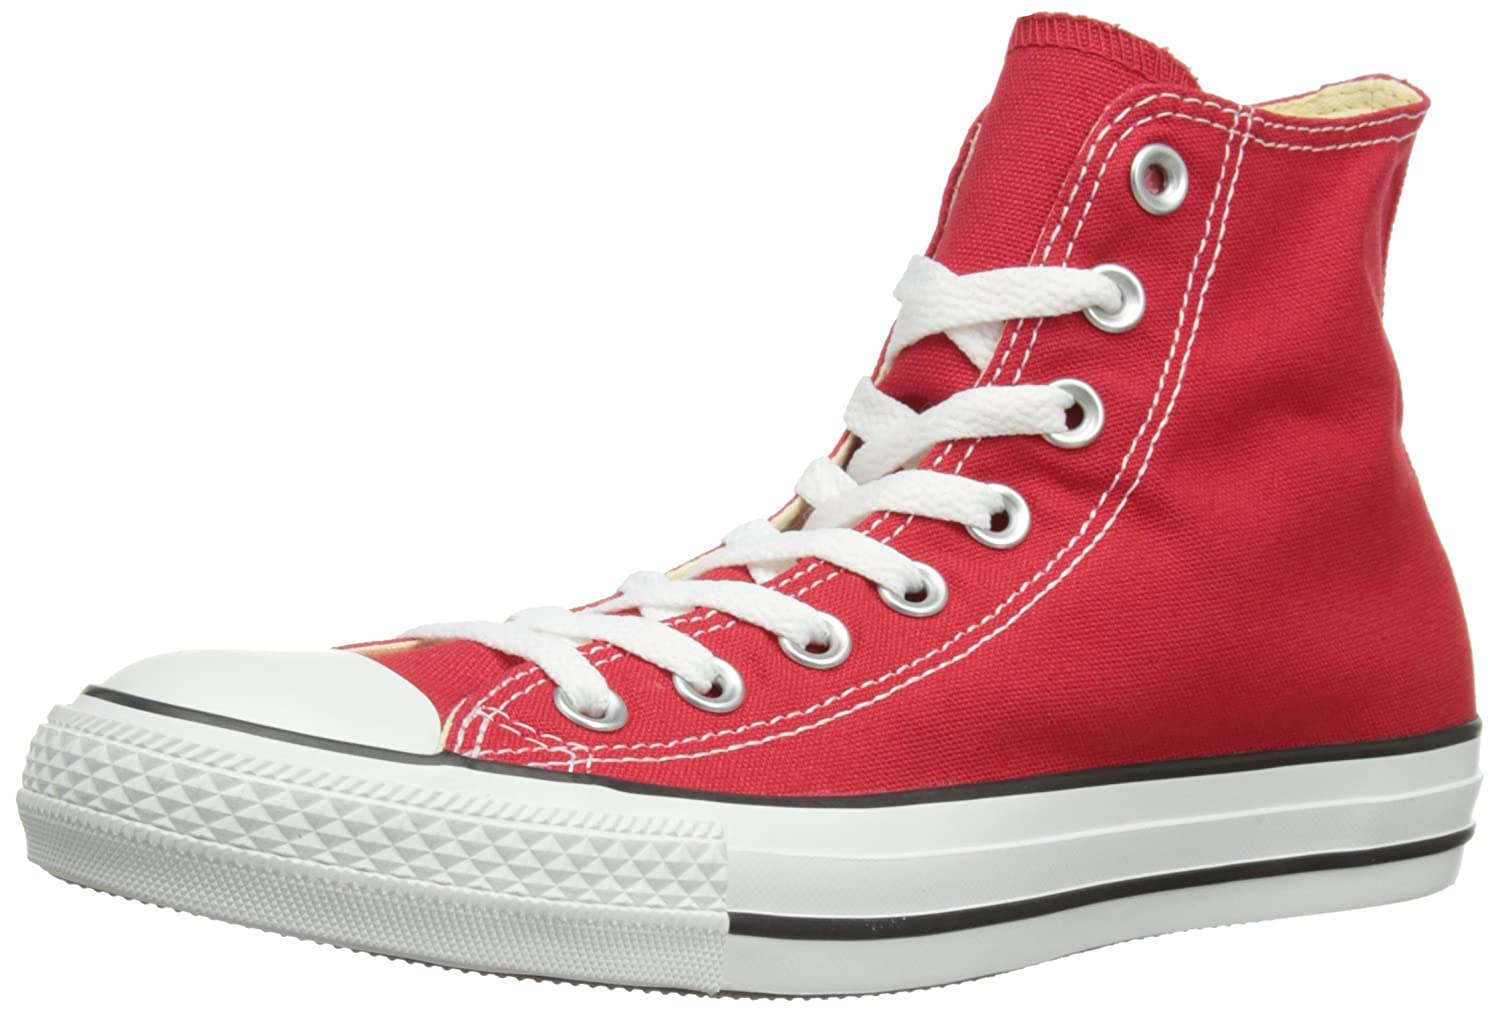 c31033a12 Amazon.com | Converse M9621: Chuck Taylor All Star High Top Unisex Red  Classic Sneakers | Fashion Sneakers